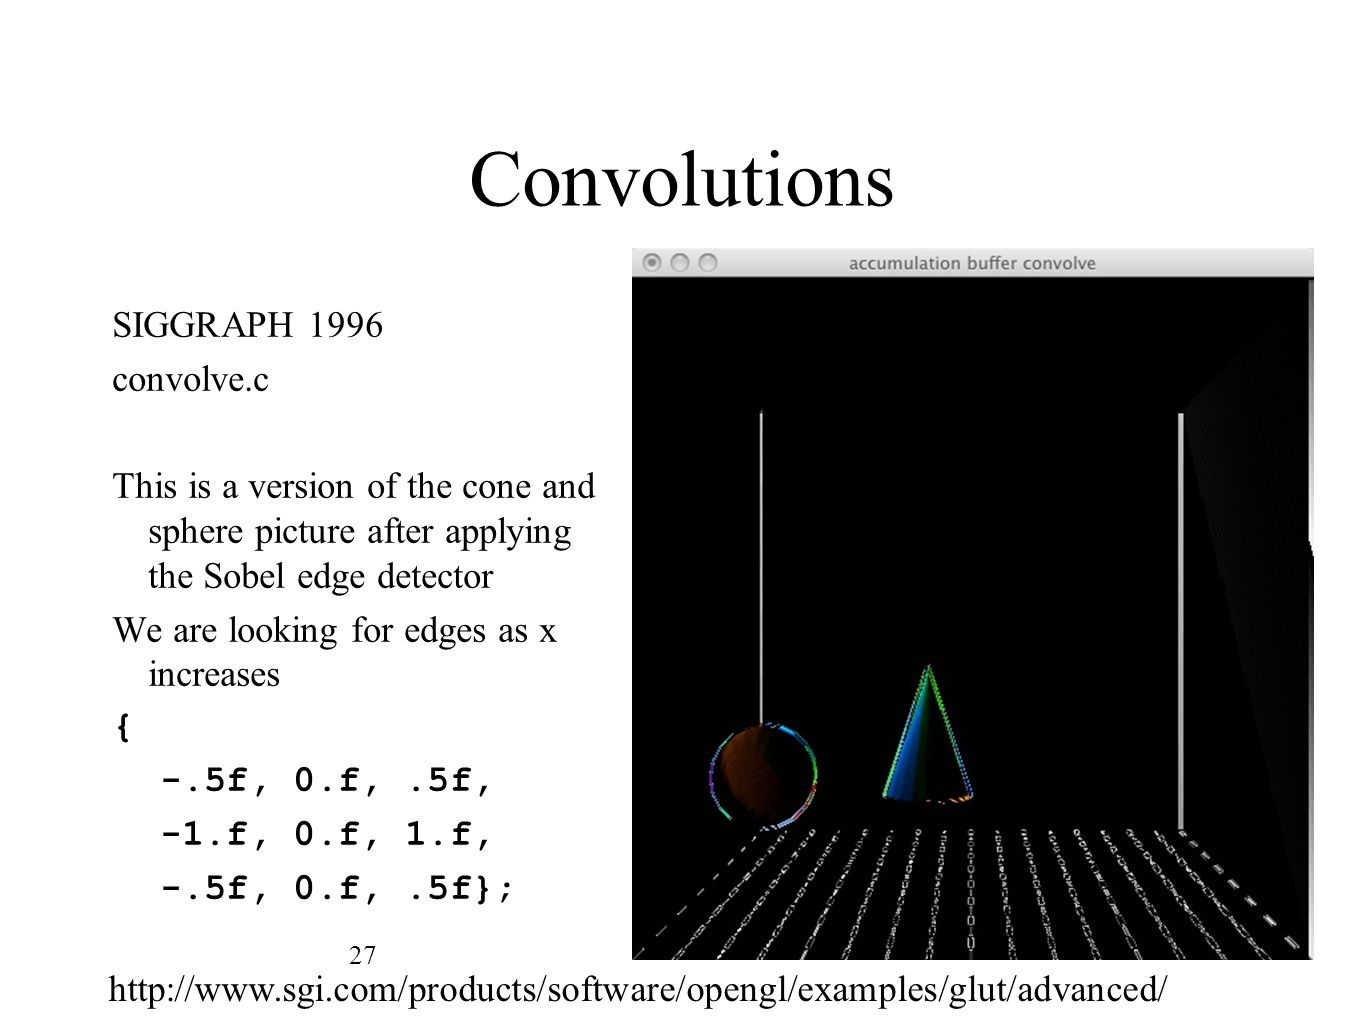 Convolutions SIGGRAPH 1996 convolve.c This is a version of the cone and sphere picture after applying the Sobel edge detector We are looking for edges